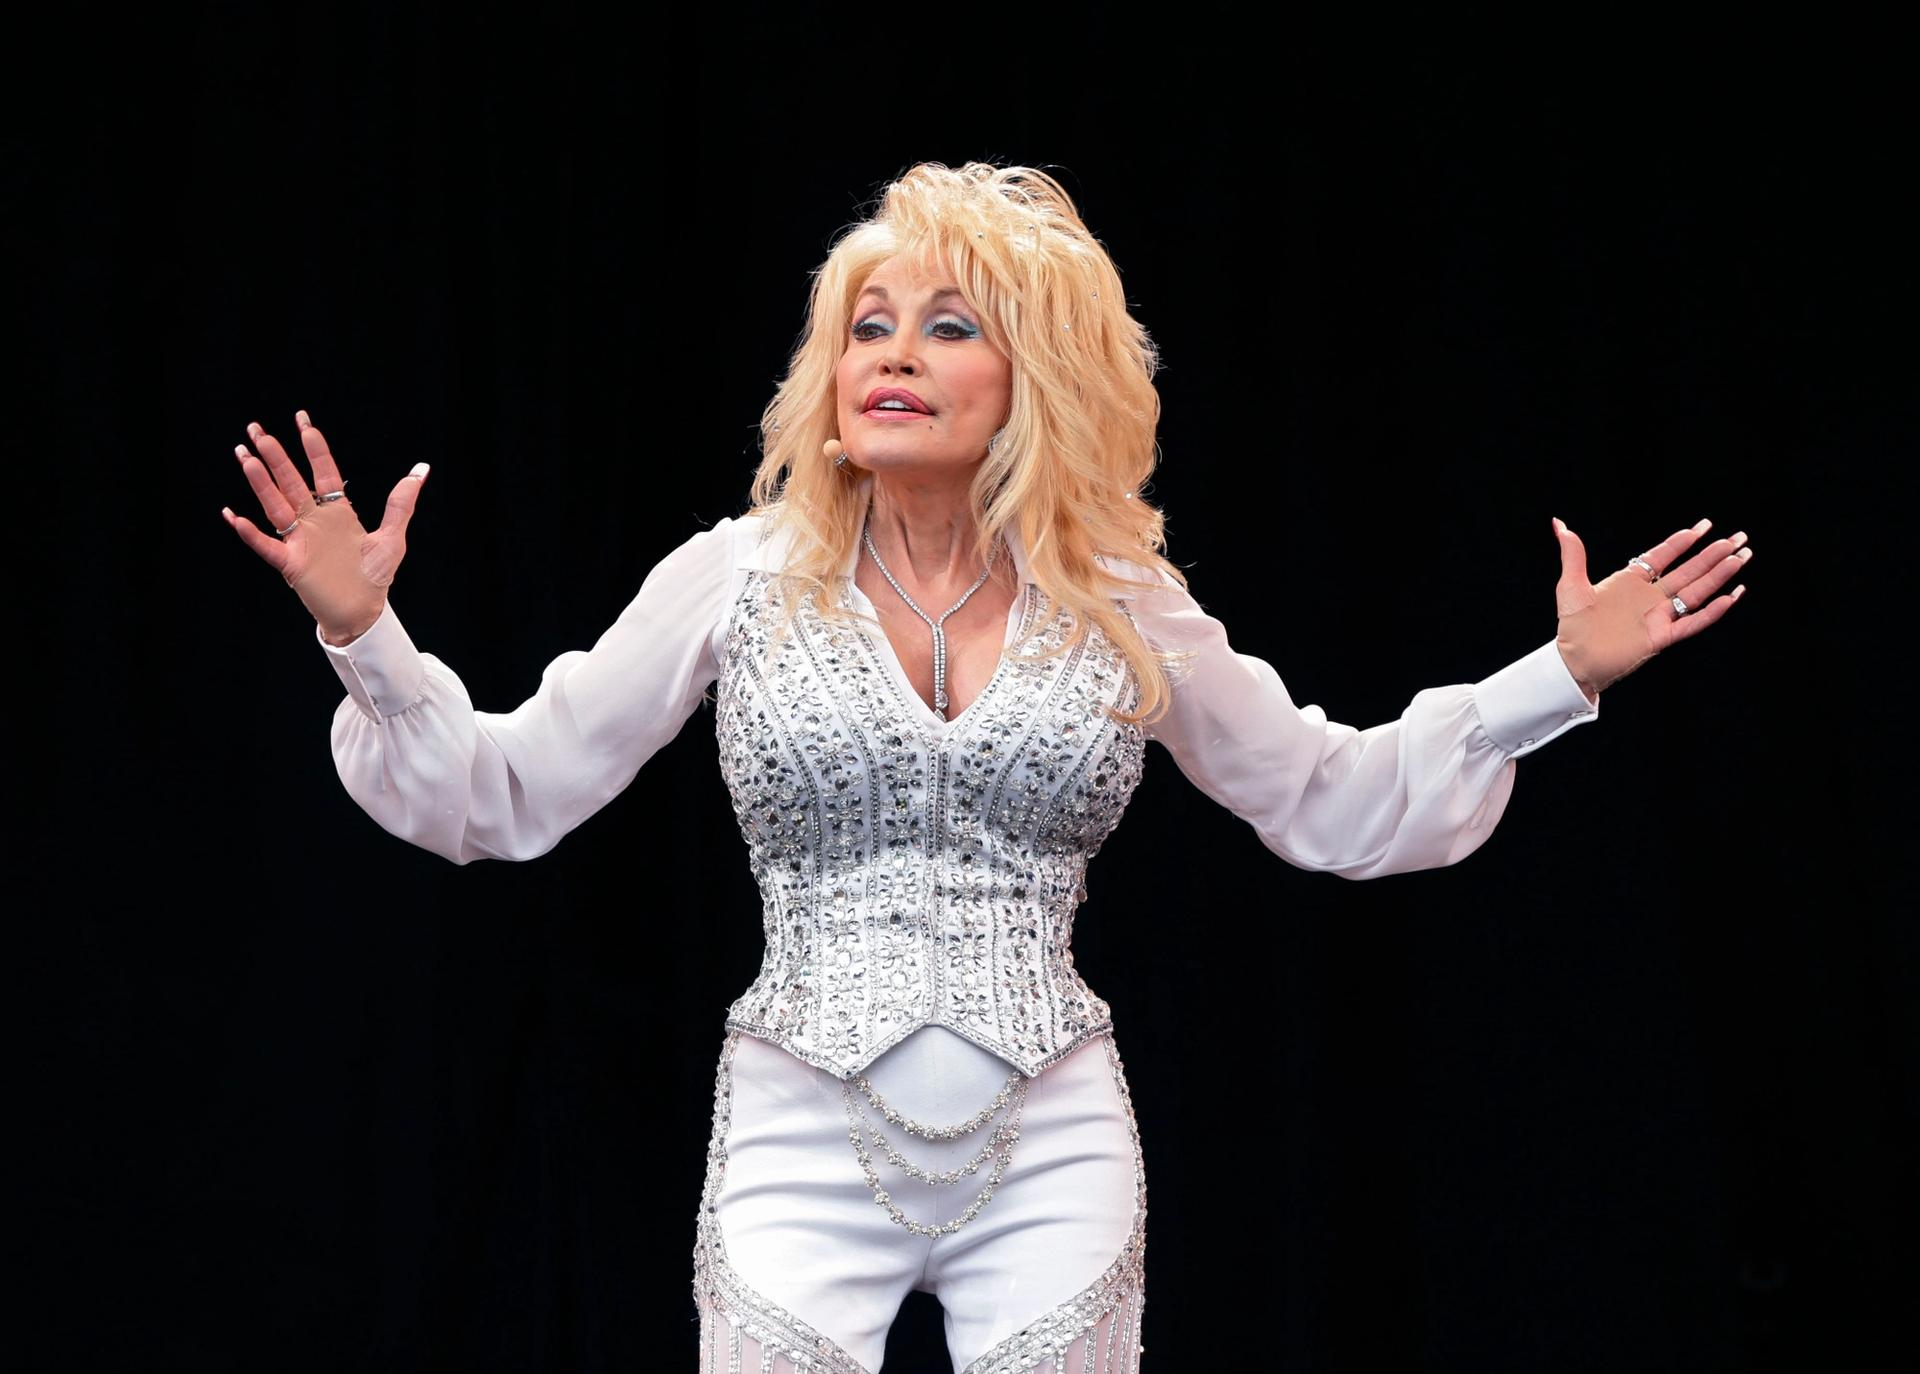 """Dolly doesn't need a statue just yet: the country music legend and life-long philanthropist told Tennessee lawmakers looking to put a memorial to her in the Nashville Capitol: """"Given all that is going on in the world, I don't think putting me on a pedestal is appropriate at this time"""" Photo: Yui Mok/PA Wire"""